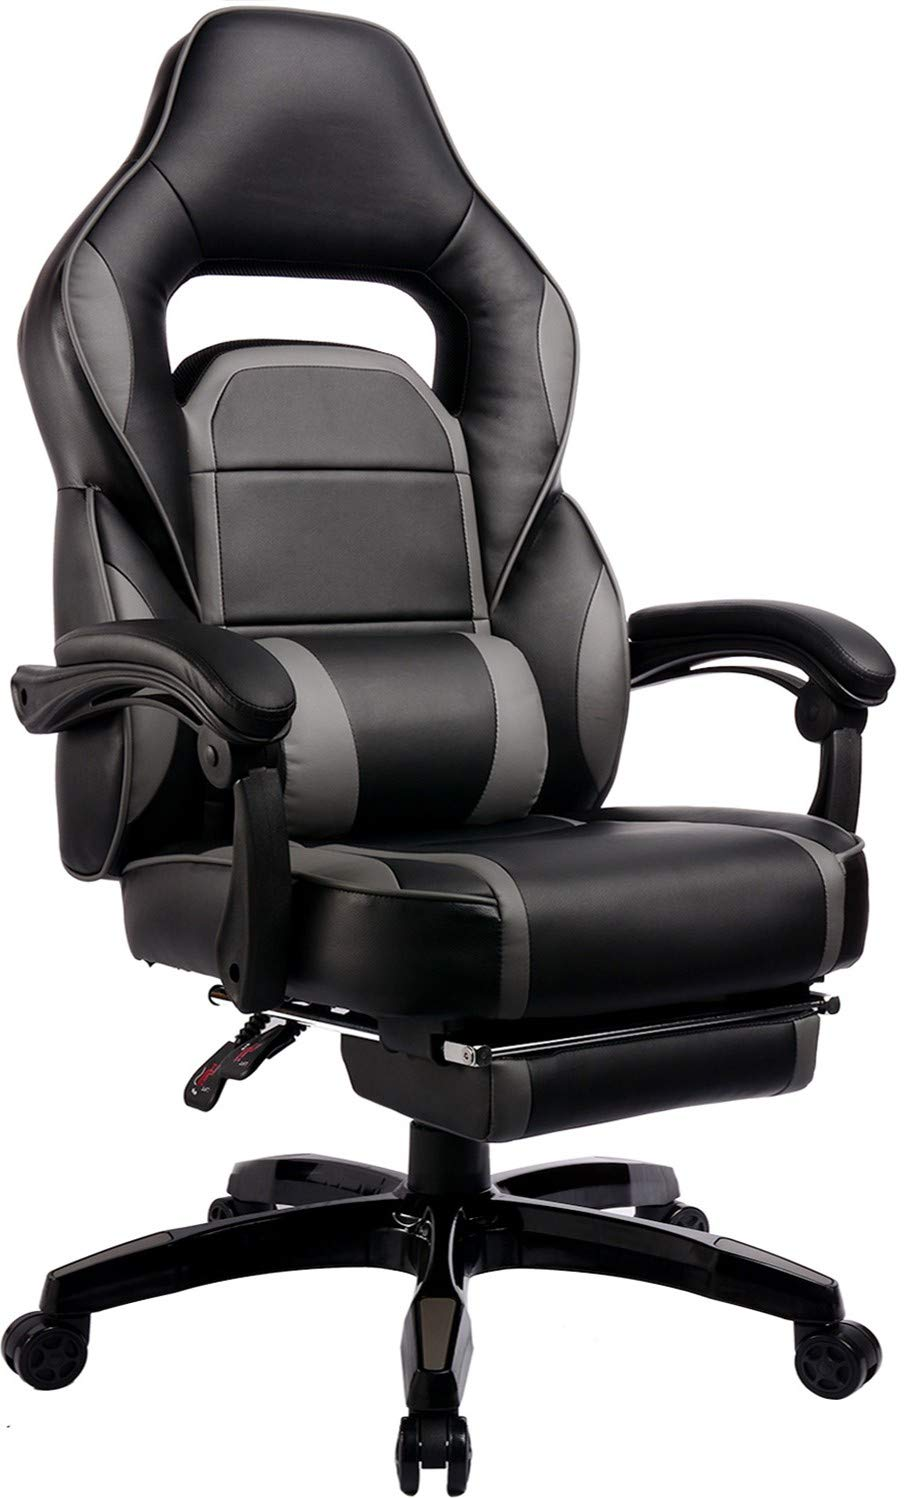 GTRACING Gaming Chair with Footrest High Back Ergonomic Racing Chair Napping Computer Office Chair GTF36 Gray